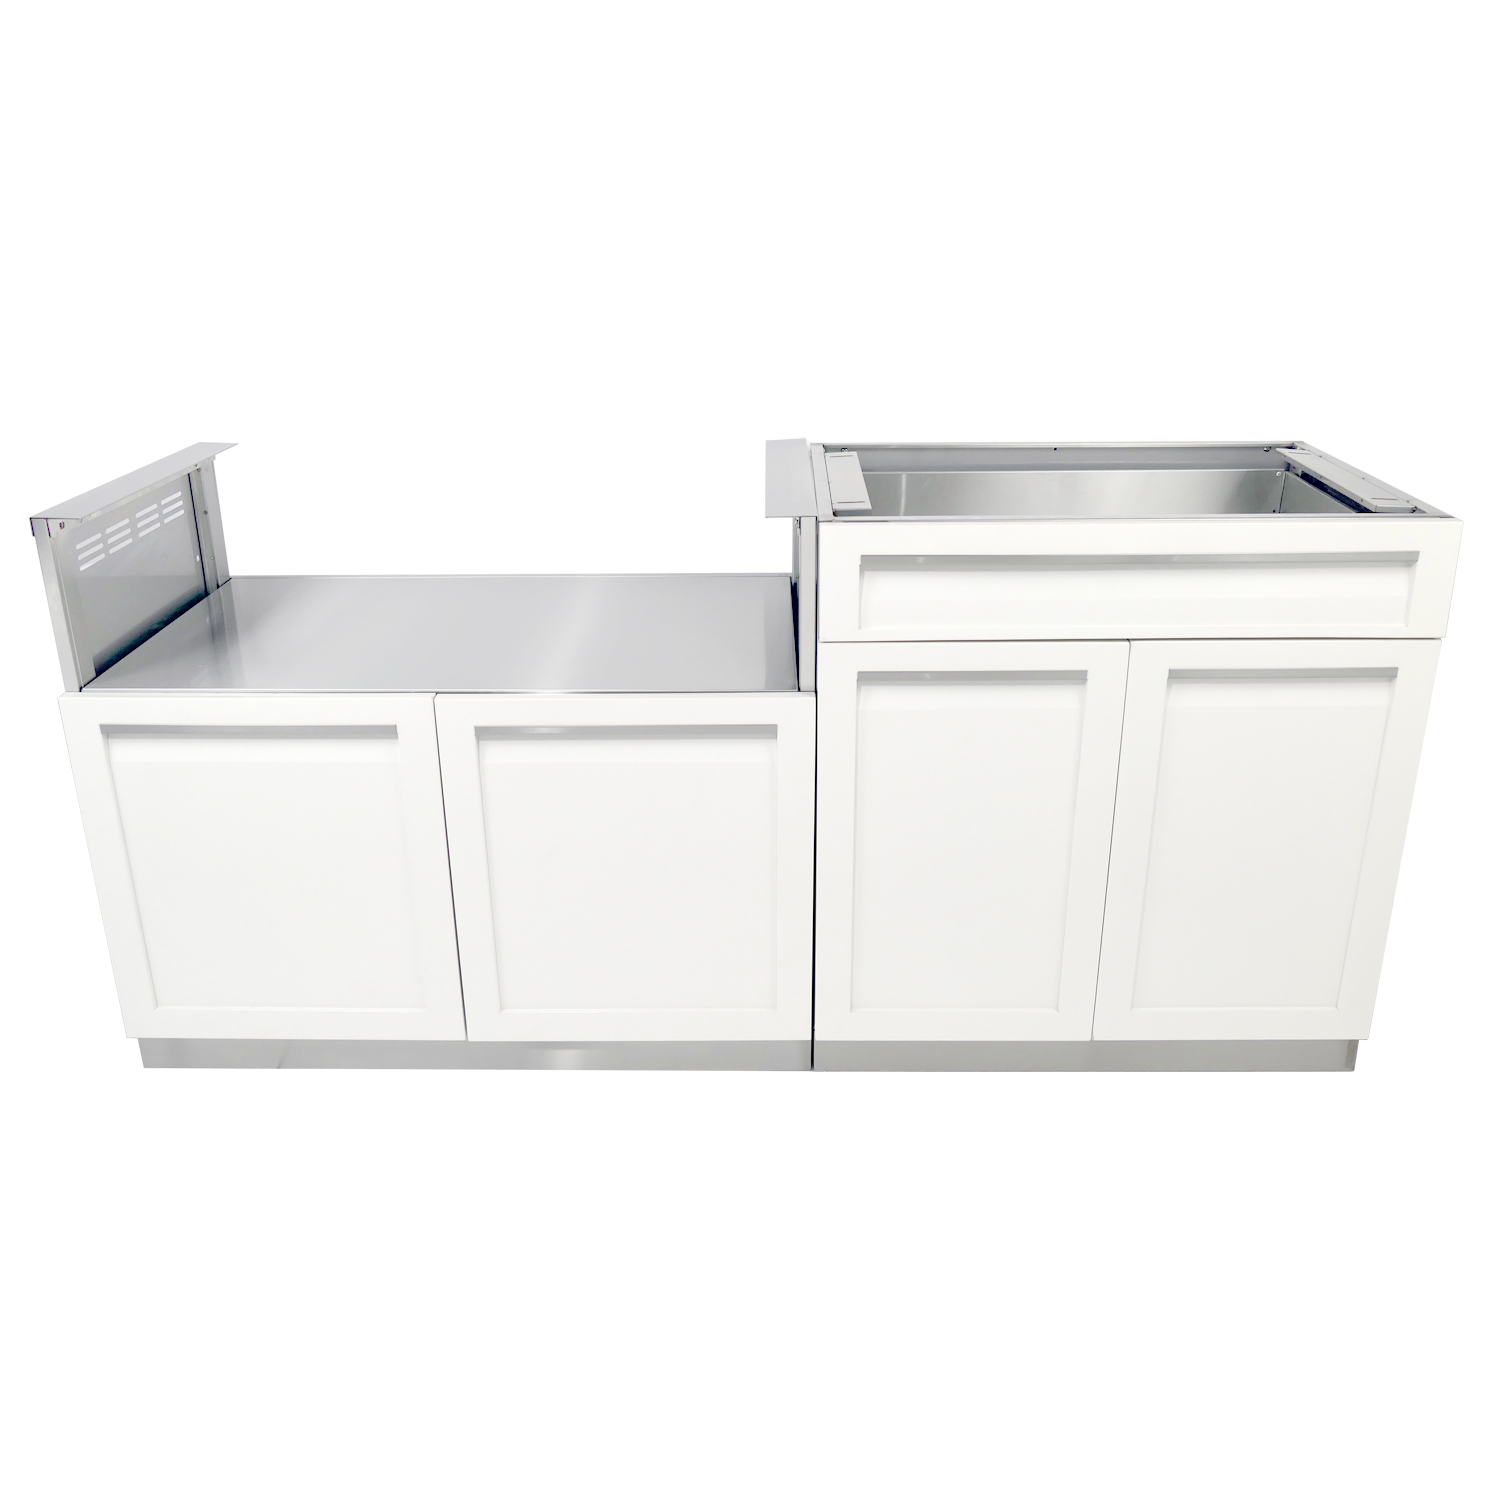 4 Life outdoor kitchen set White Combo BBQ 1500